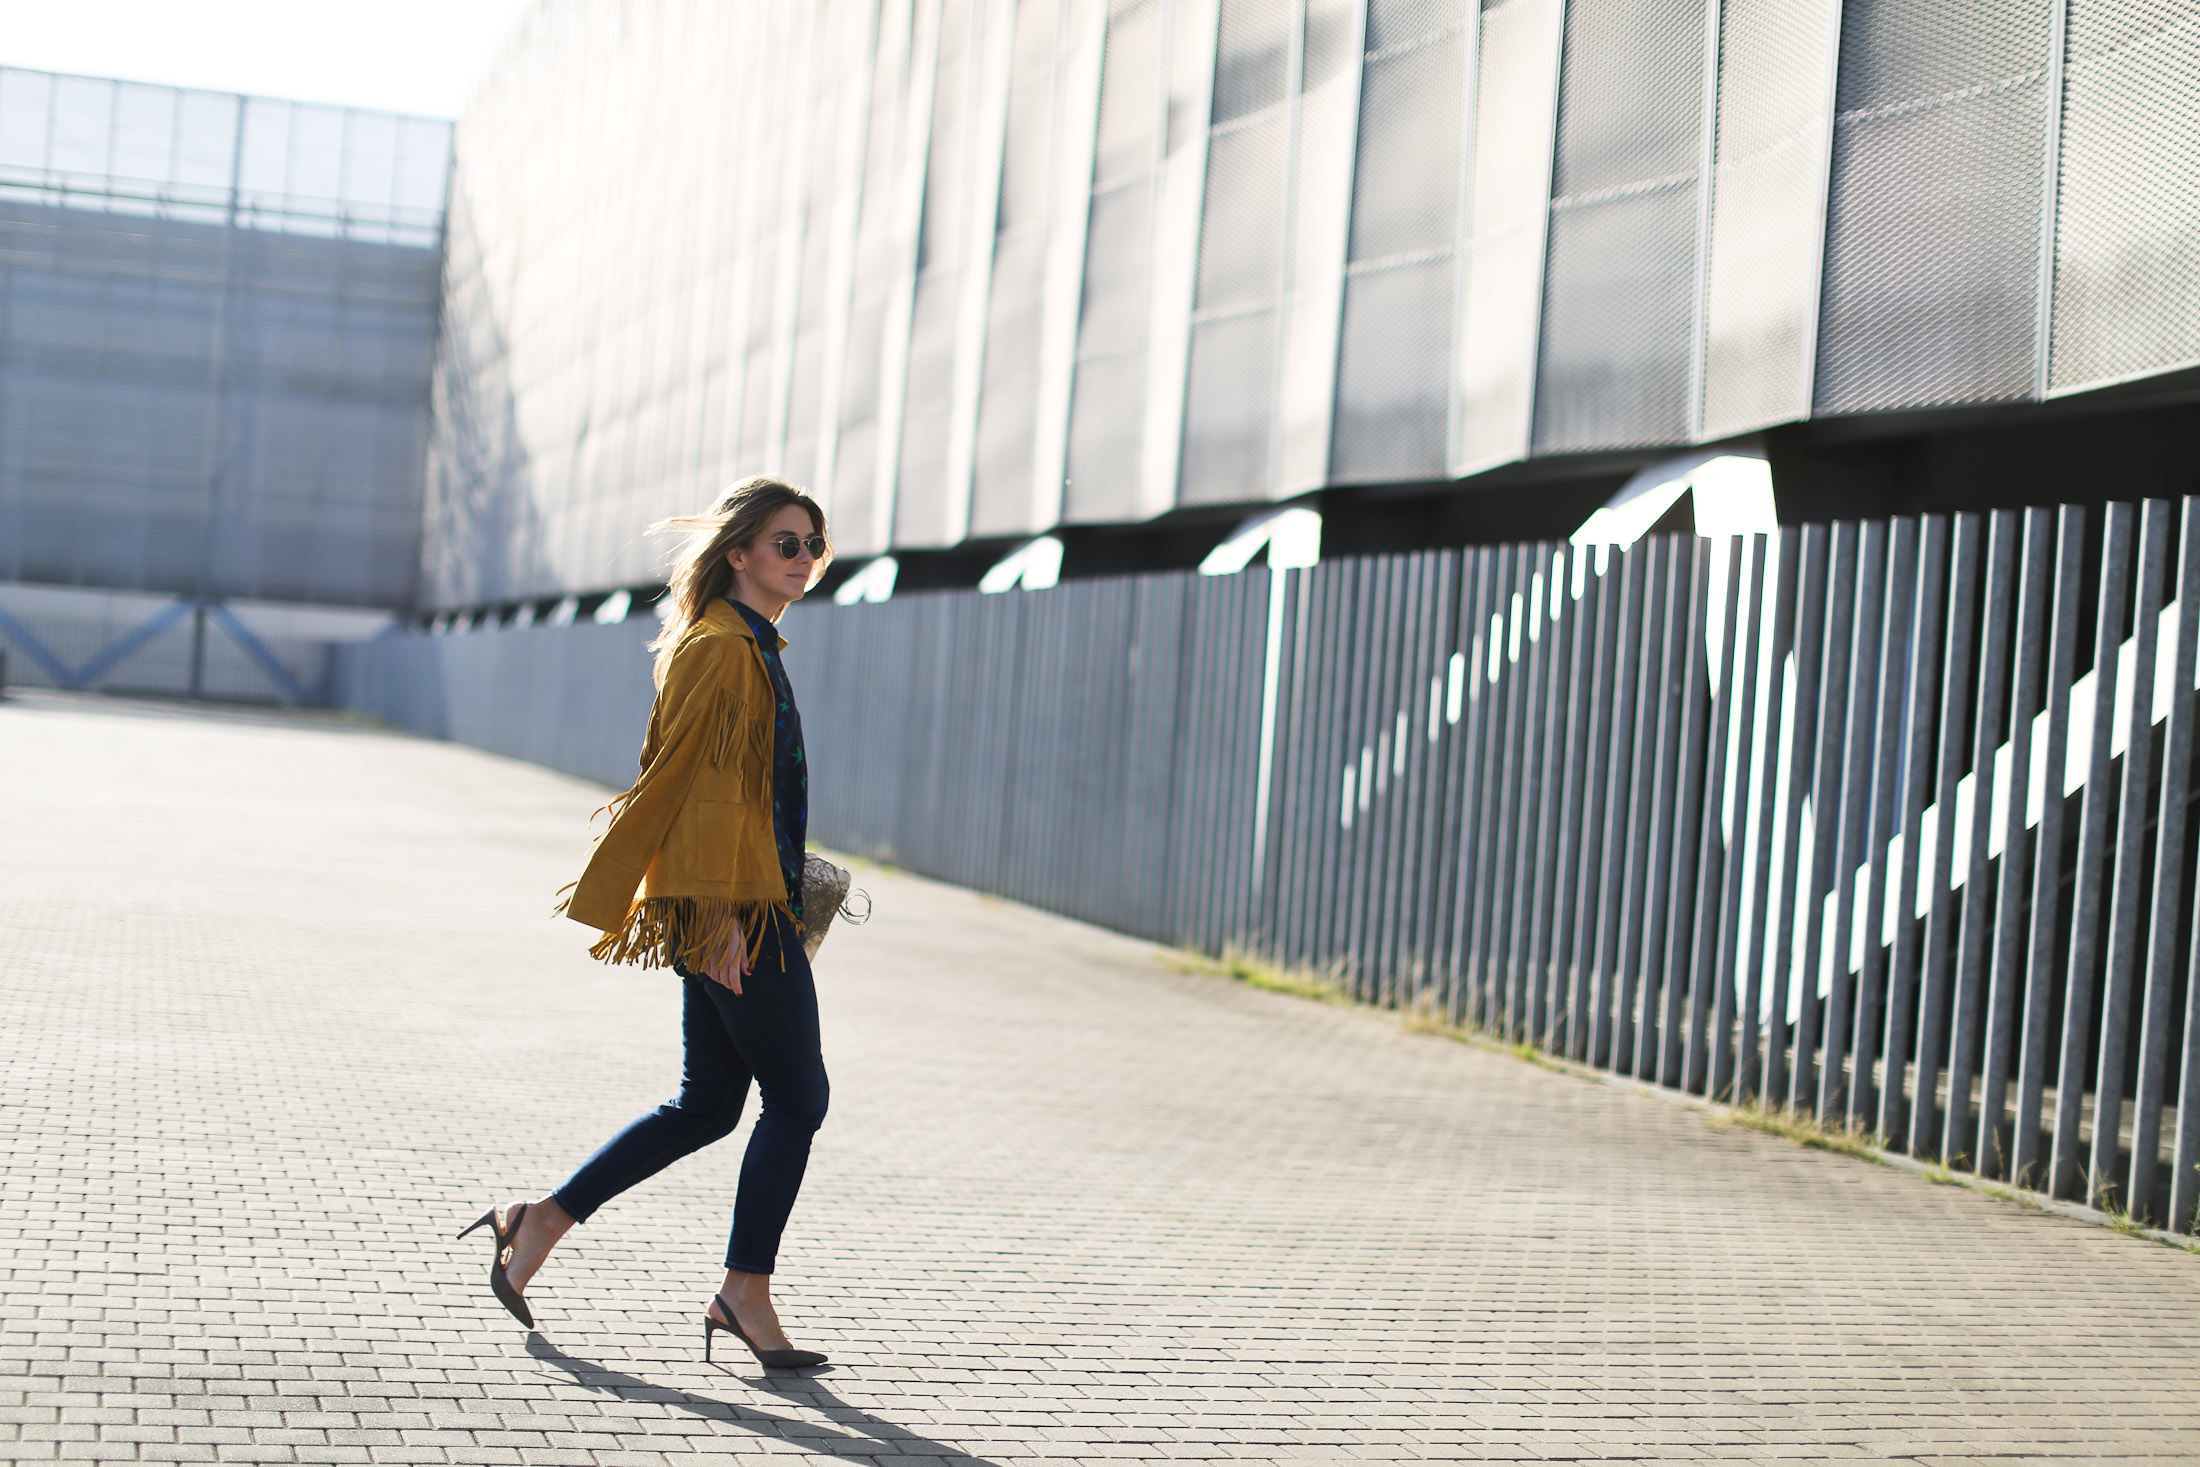 Clochet_streetstyle_zubi_helsinki_clutch_trimmerbilbao_equipment_france_silk_blouse-14